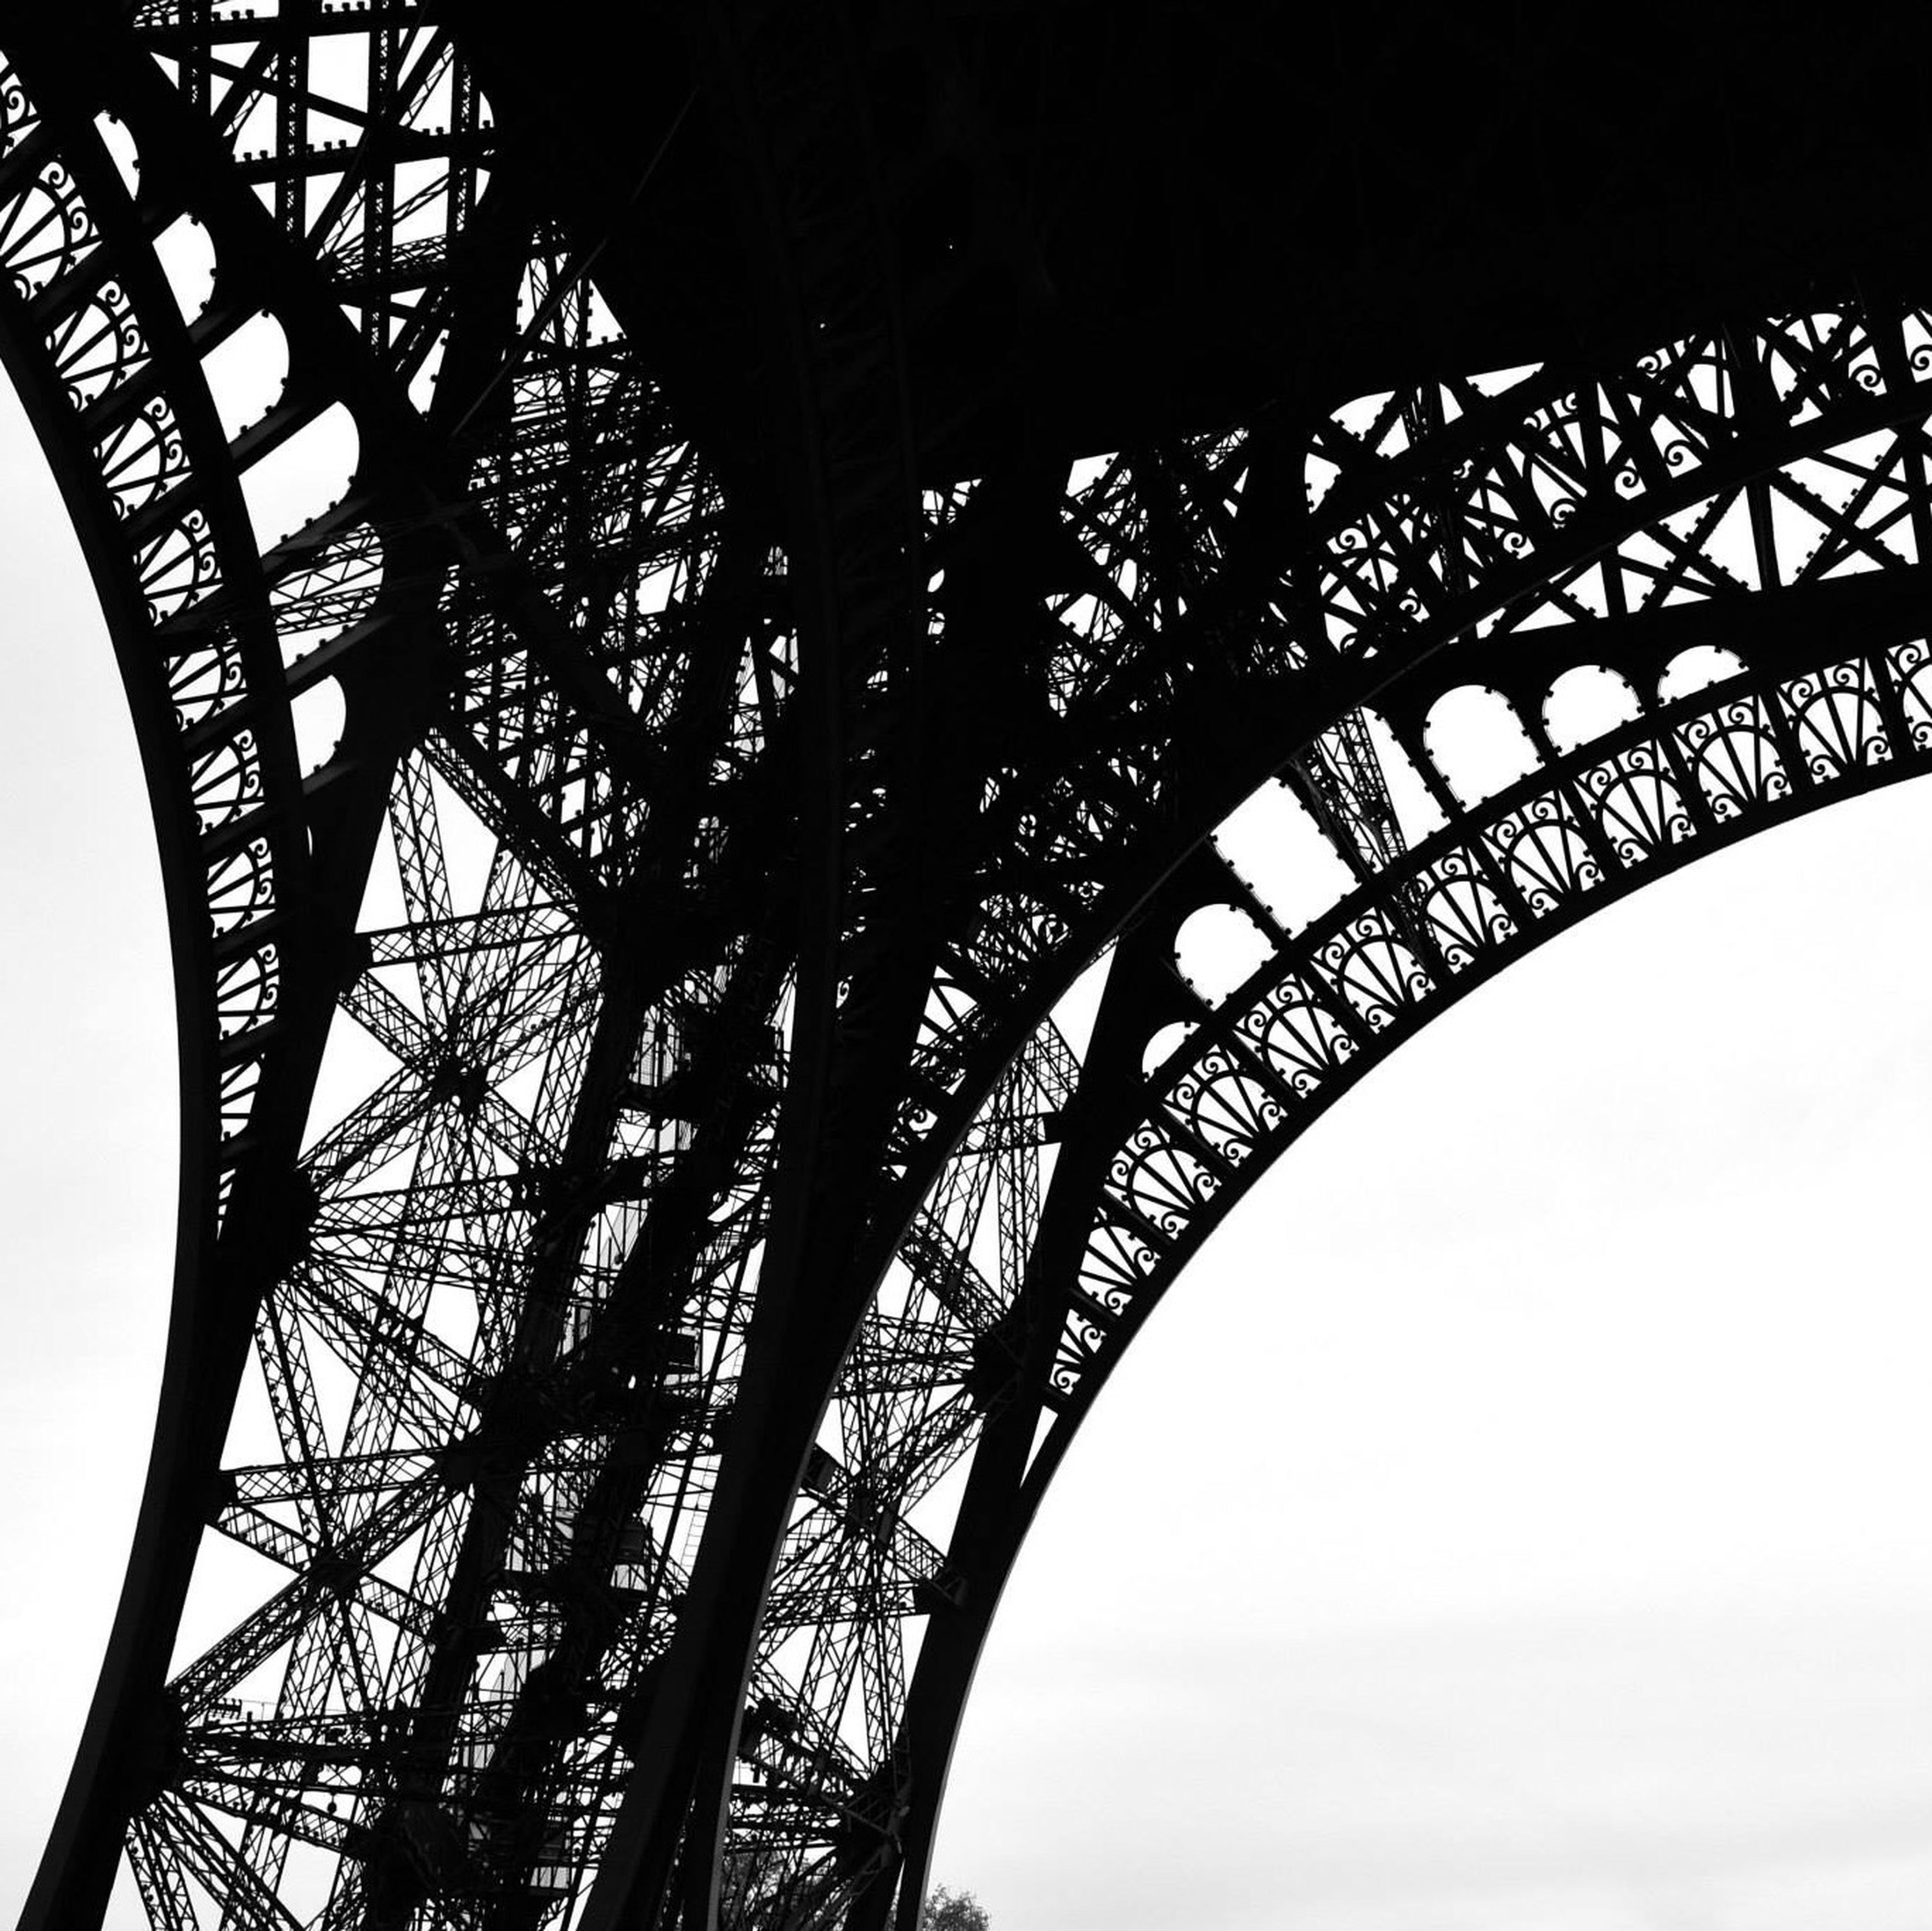 low angle view, built structure, architecture, metal, metallic, engineering, eiffel tower, famous place, international landmark, connection, travel destinations, clear sky, capital cities, architectural feature, culture, tourism, travel, bridge - man made structure, tower, sky